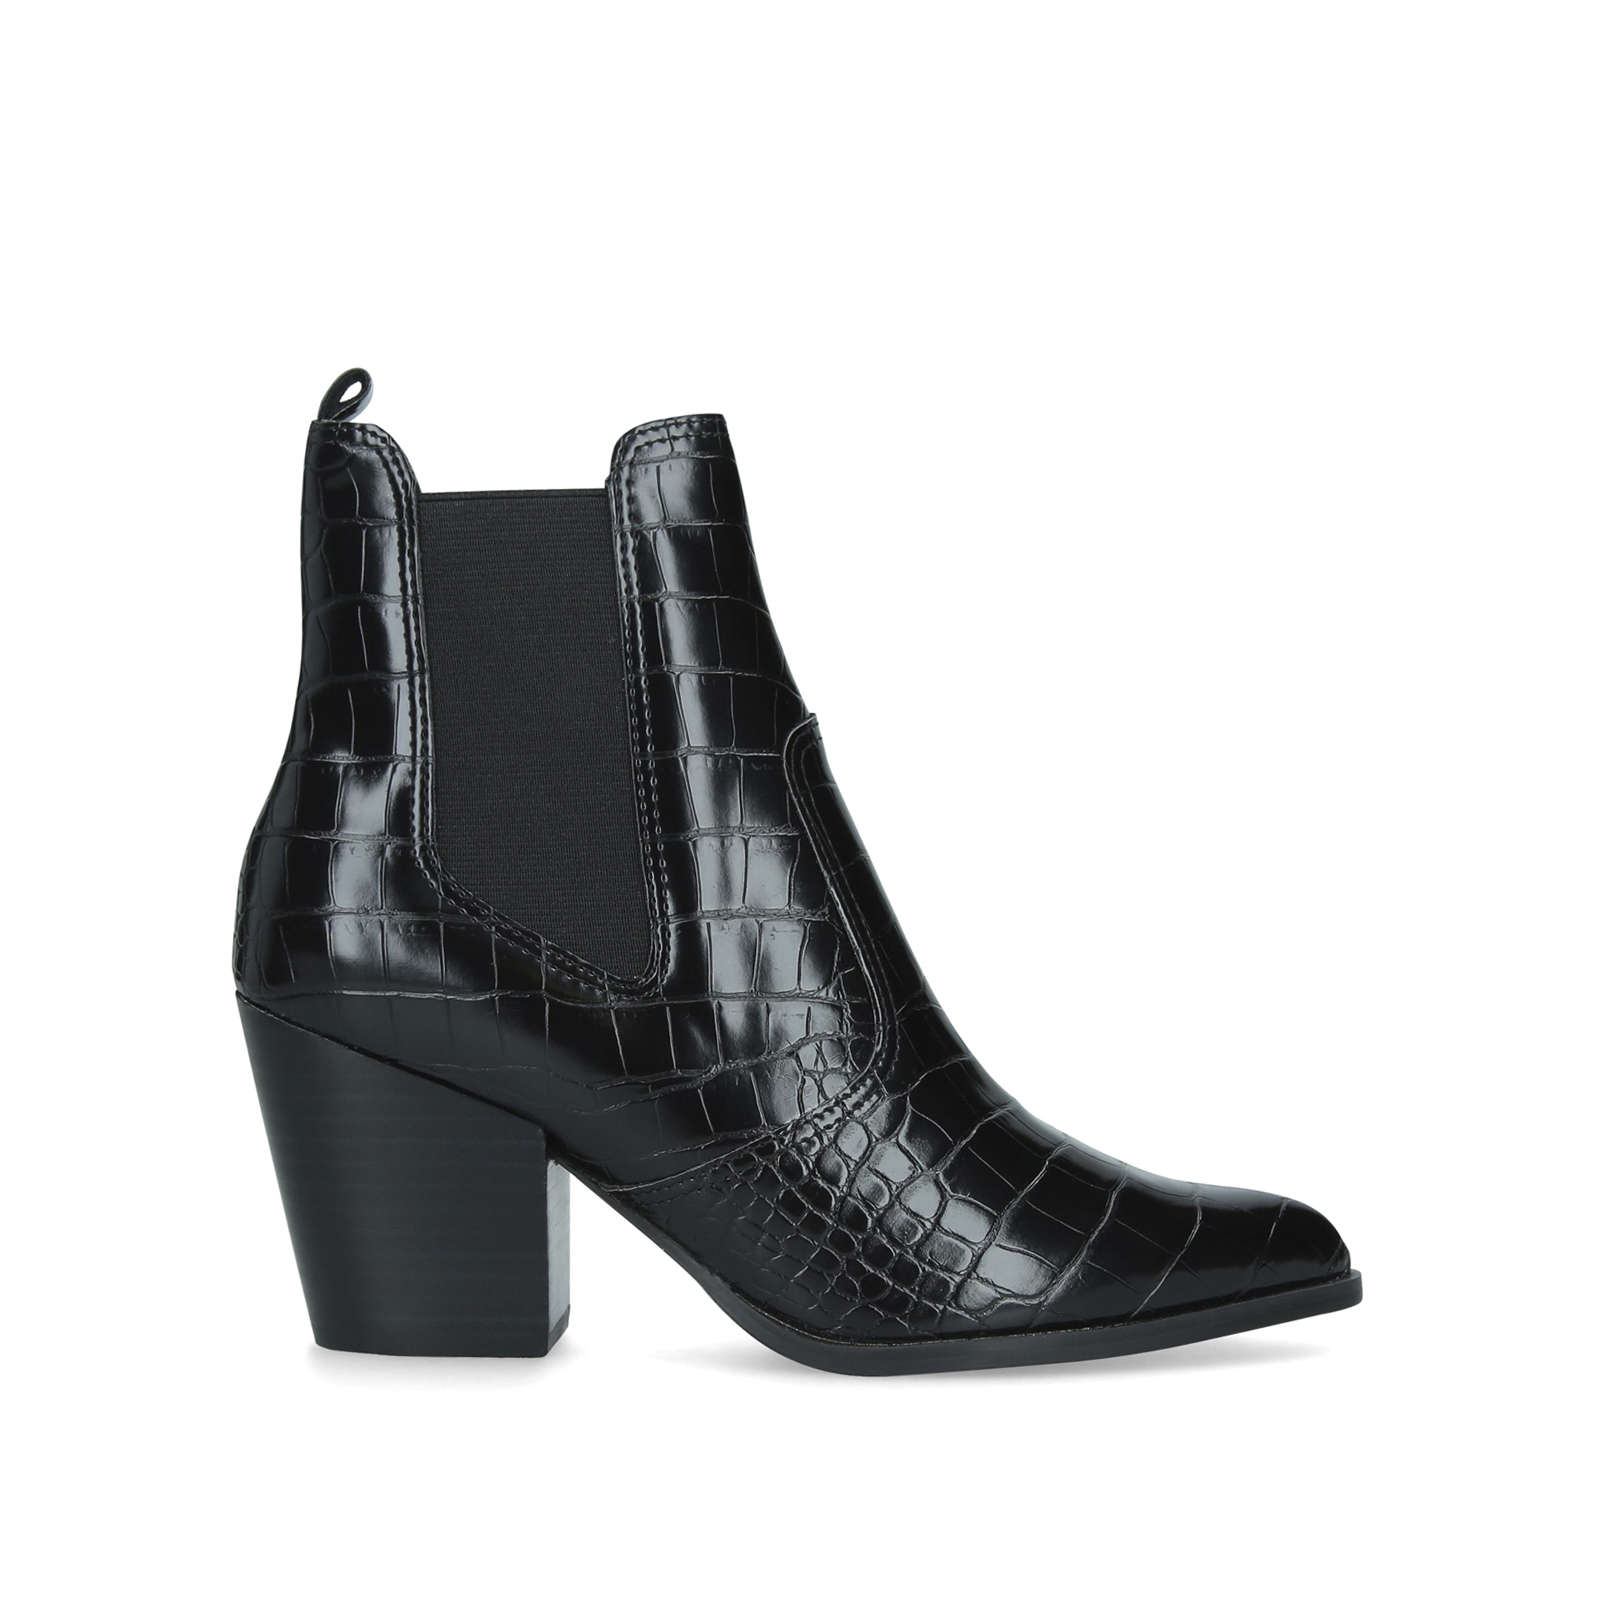 PATRICIA - STEVE MADDEN Ankle Boots